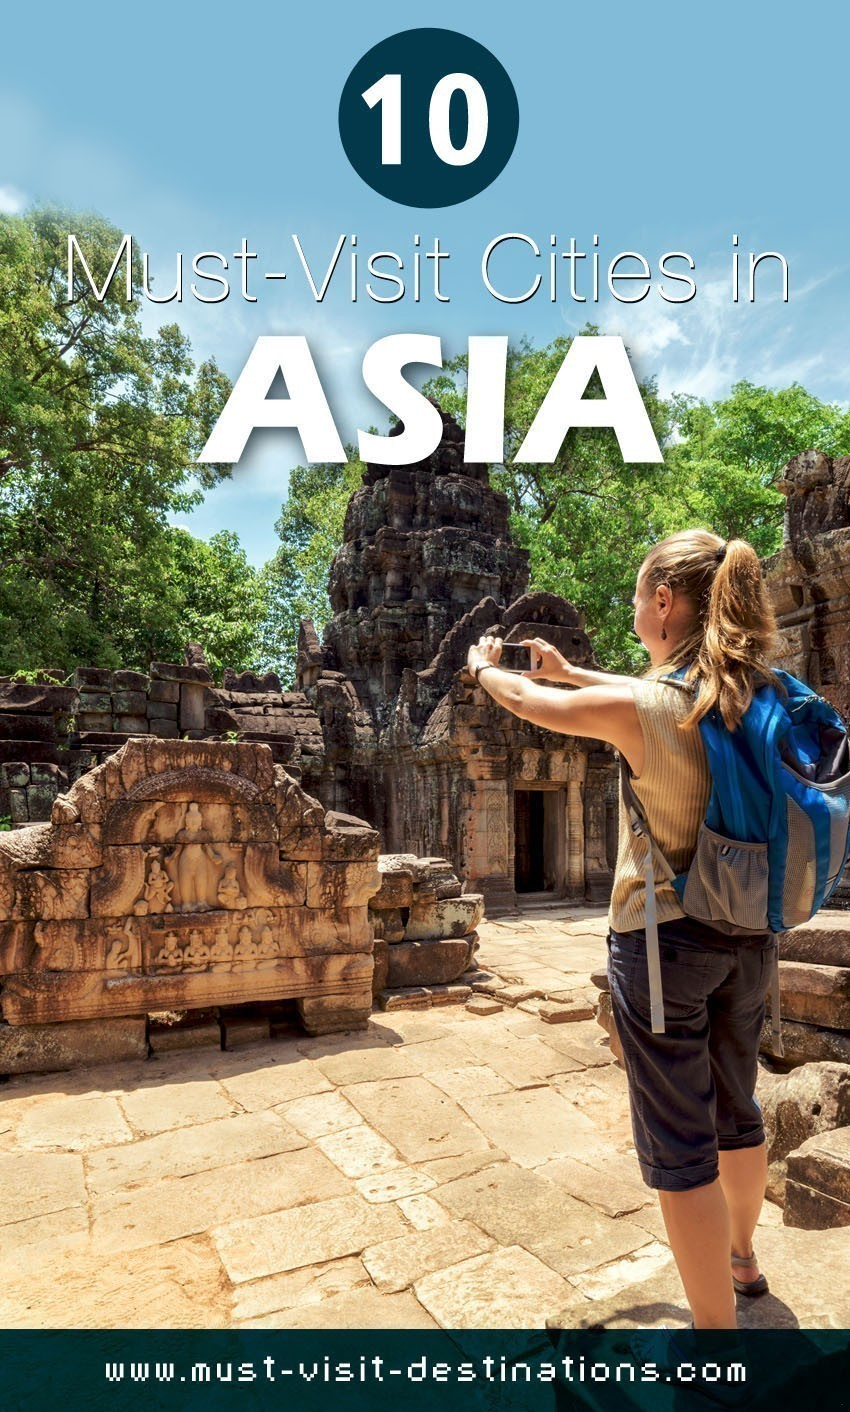 10 Must-Visit Cities in Asia #travel #asia